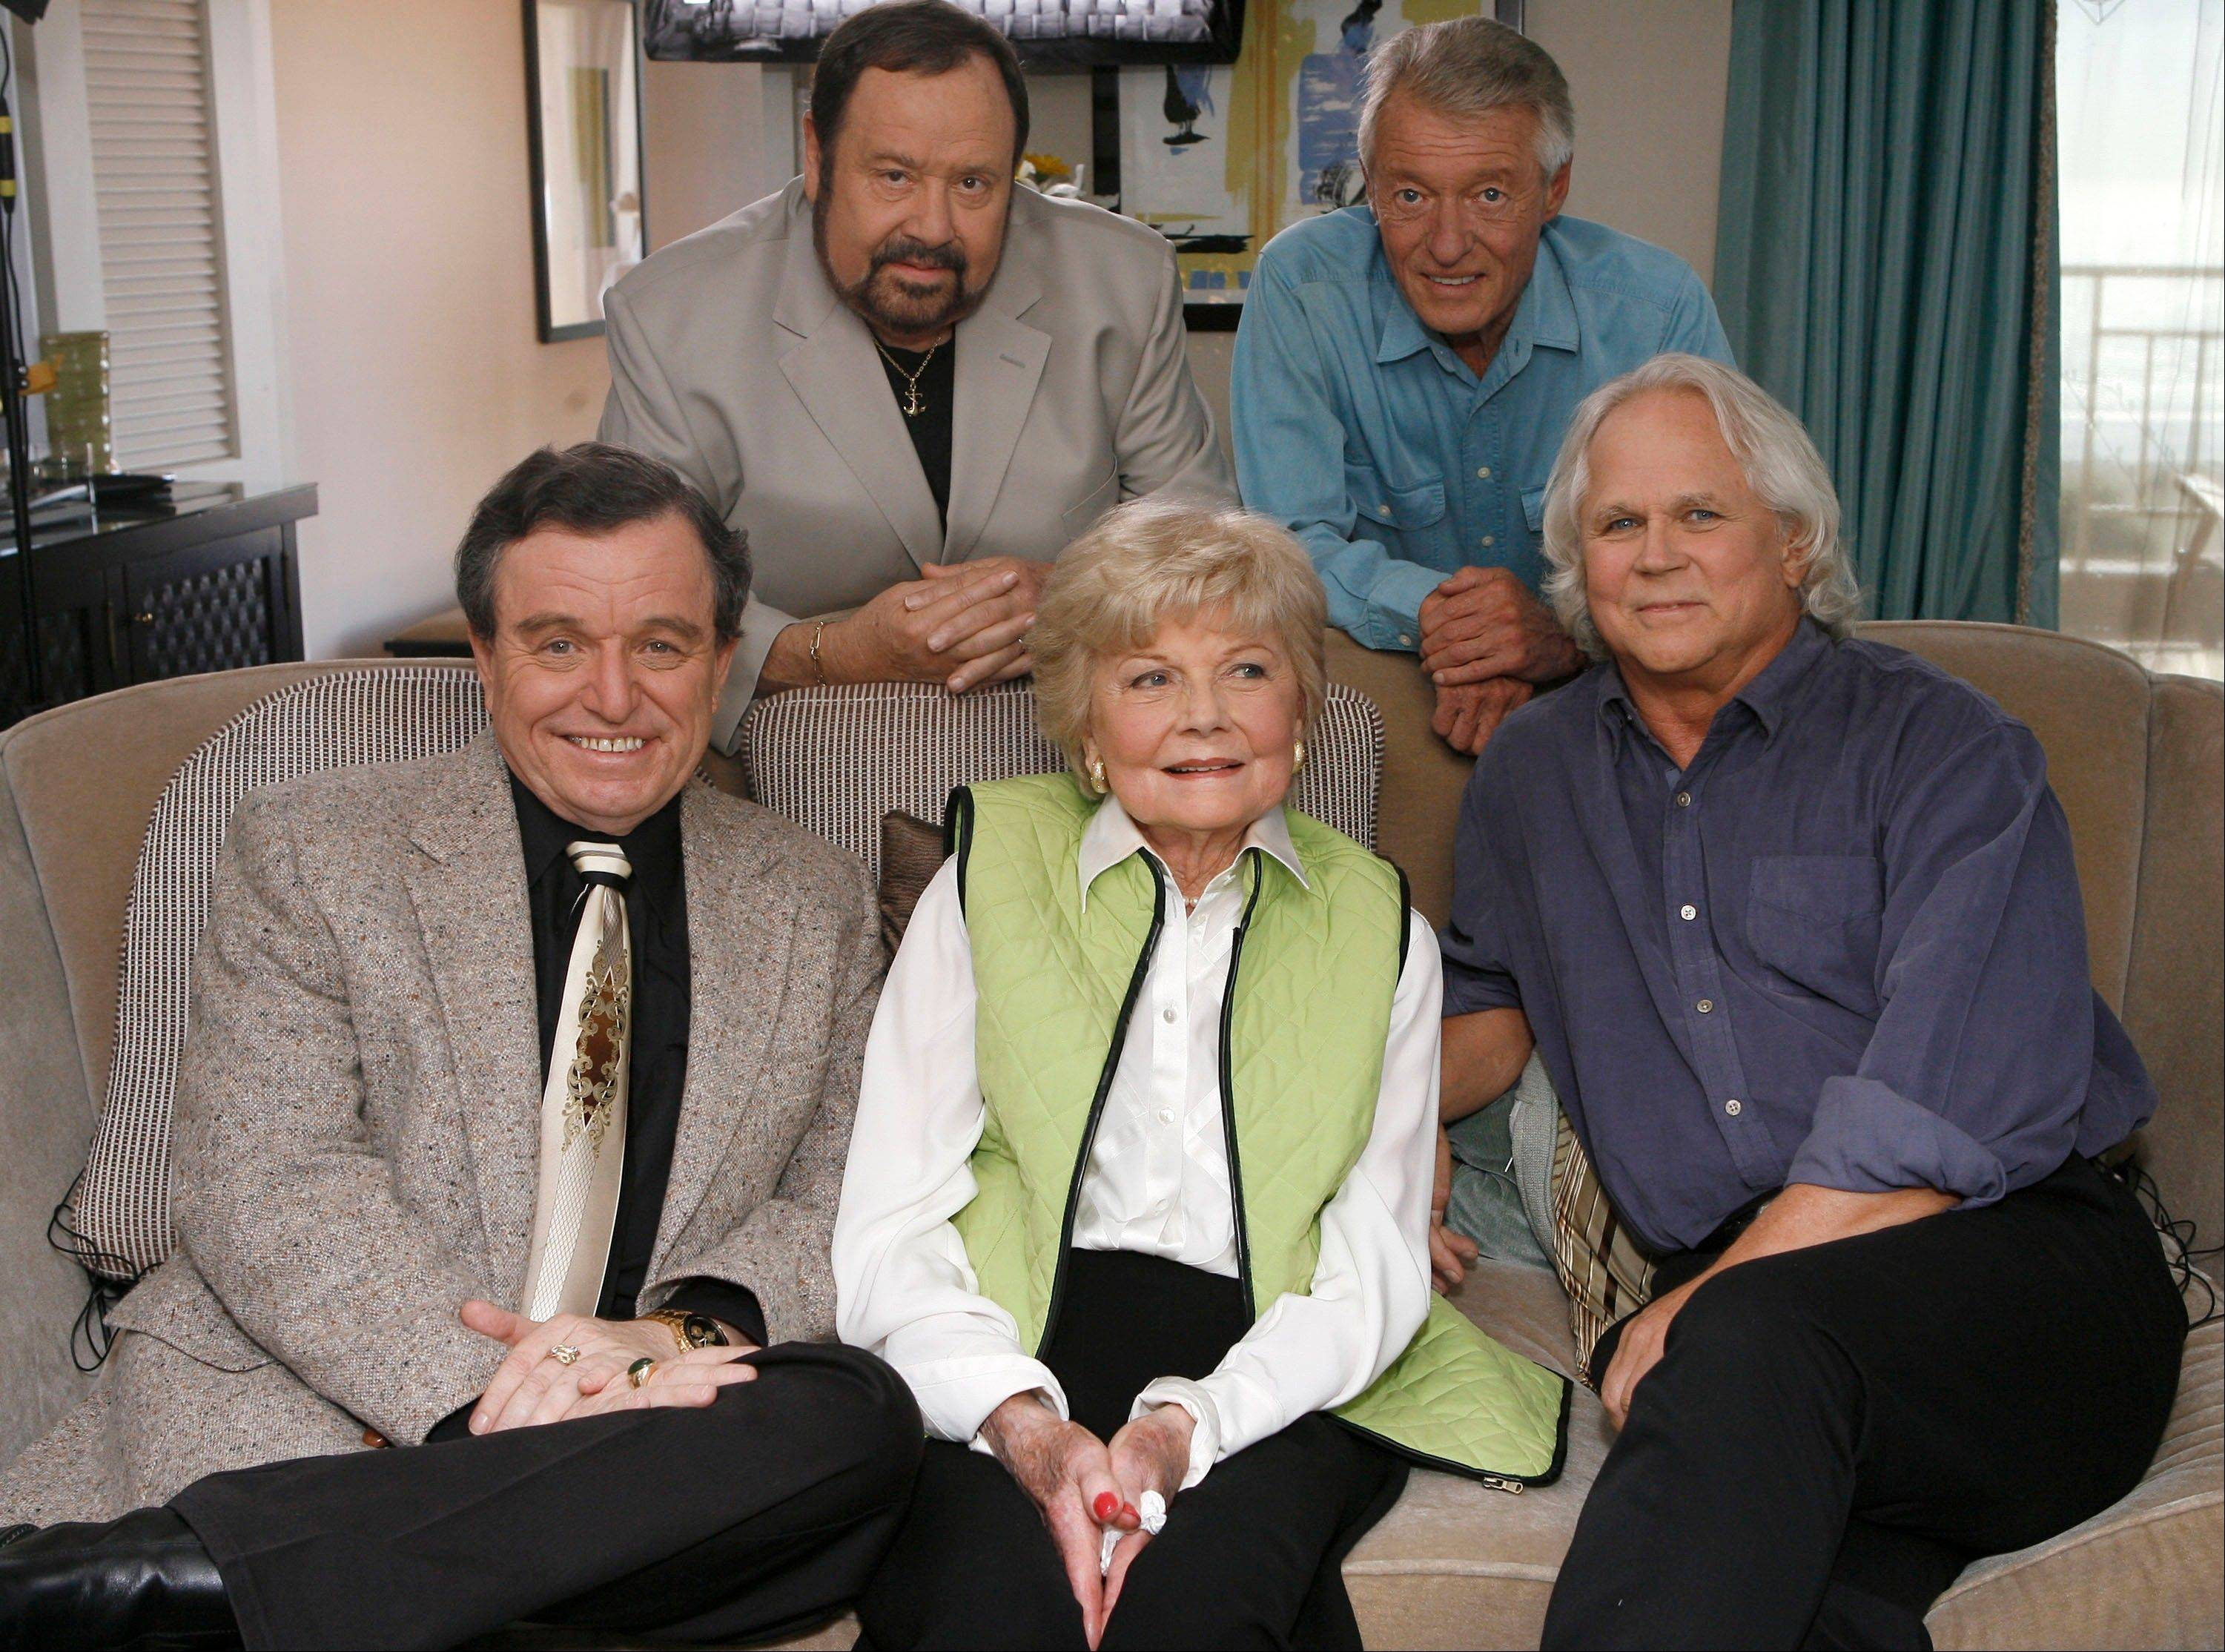 In this Sept. 27, 2007 file photo, seated, from left, Jerry Mathers, Barbara Billingsley and Tony Dow, and, standing from left, Frank Bank and Ken Osmond, pose for a photo as they are reunited to celebrate the 50th anniversary of the television show, �Leave it to Beaver,� in Santa Monica, Calif. Bank, who played oafish troublemaker Lumpy on the sitcom �Leave It to Beaver,� has died.